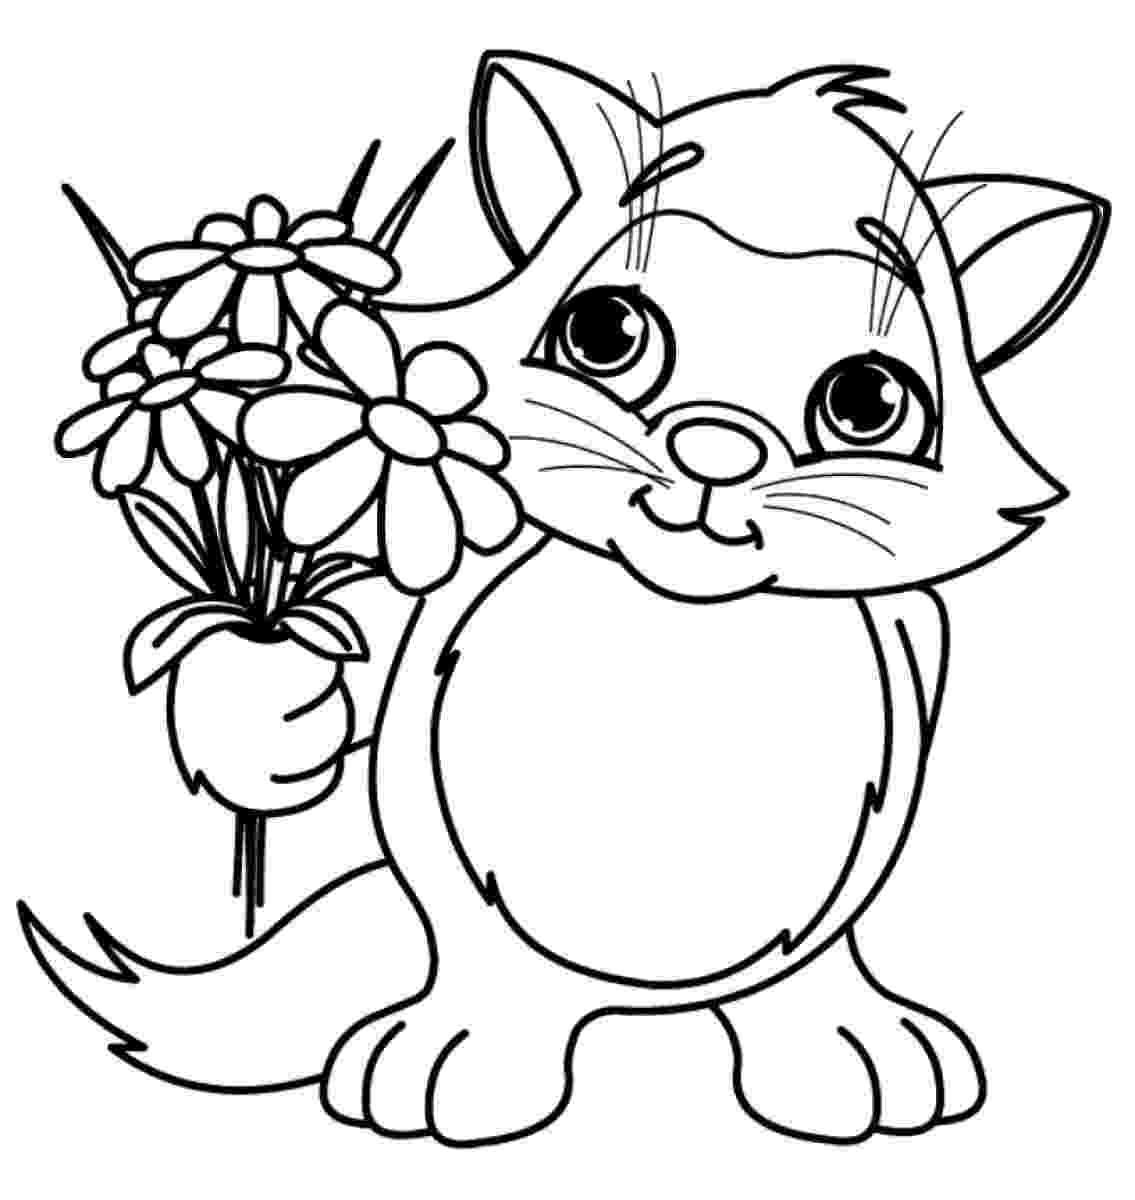 flower printable pictures flowers pictures elegant free flower coloring pages for kids printable pictures flower